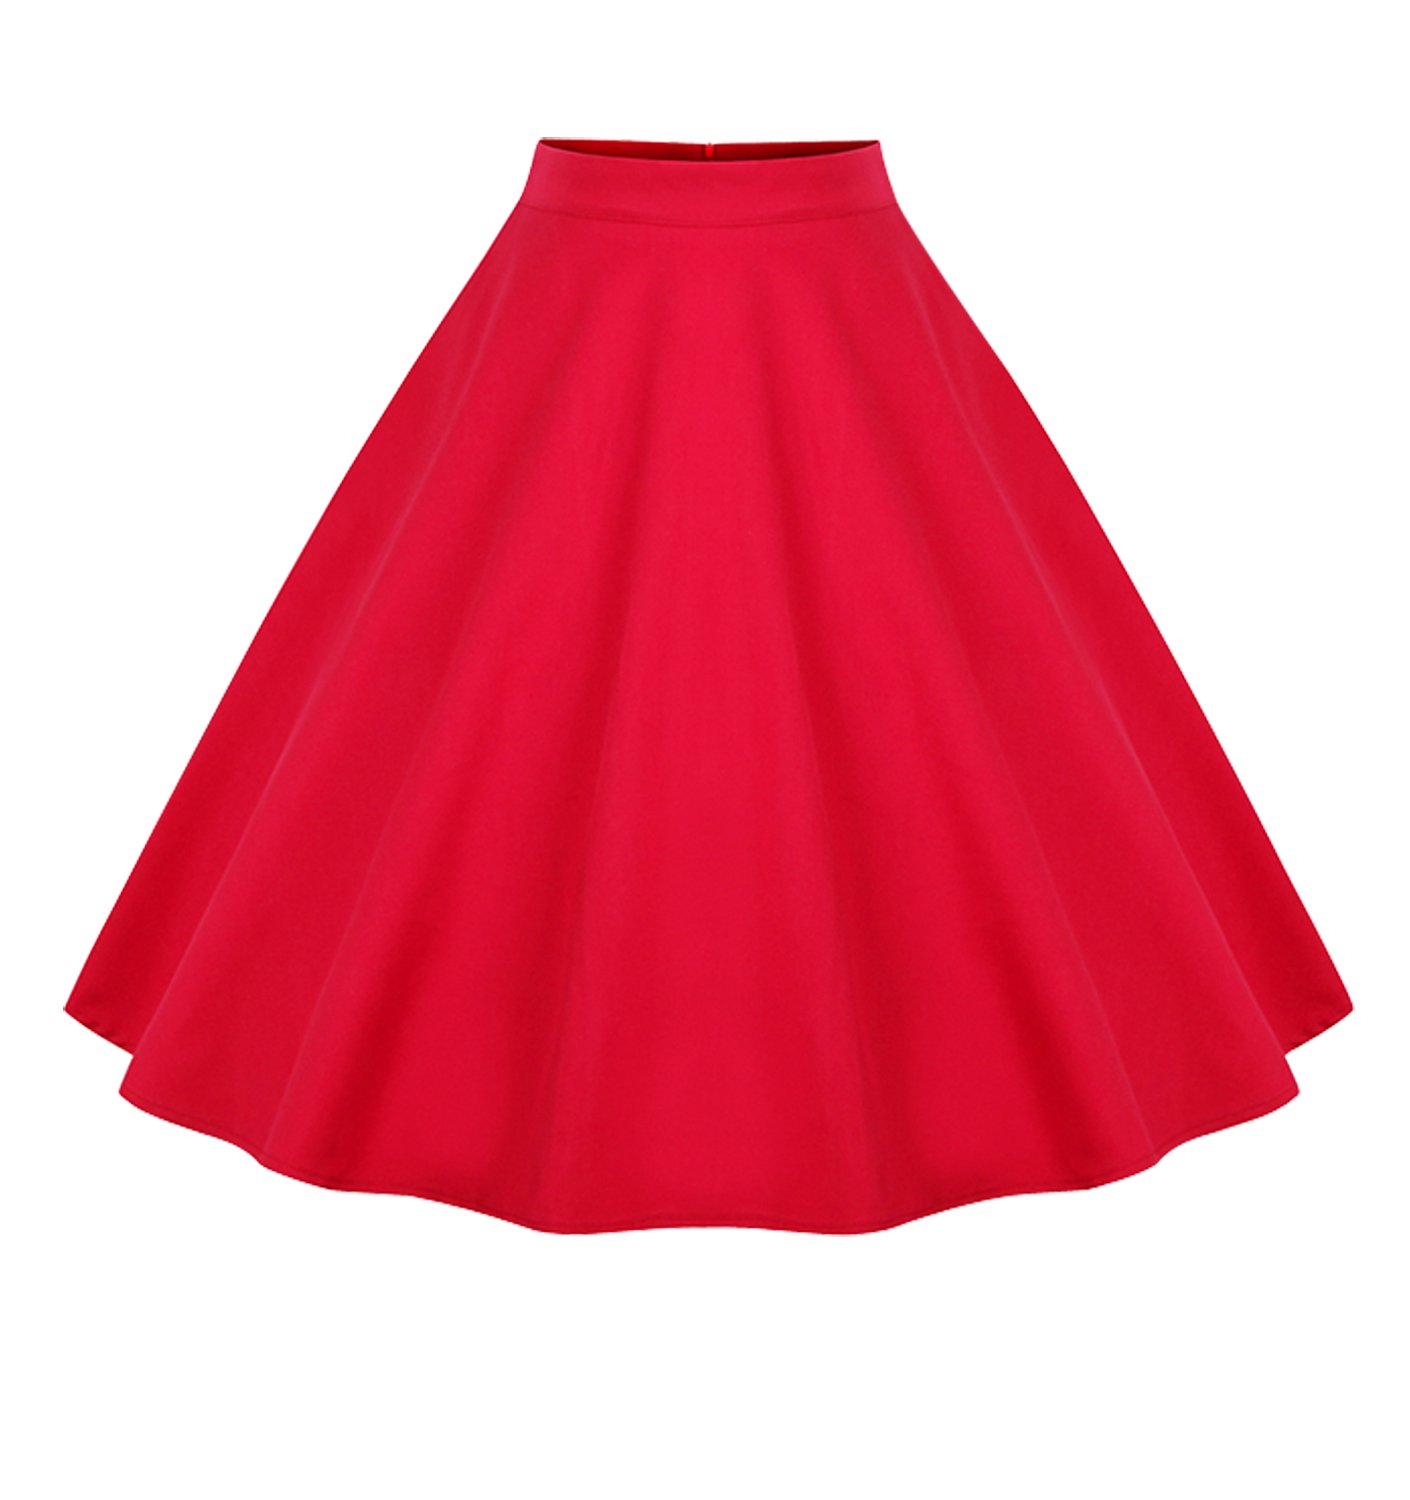 Killreal Women's High Waisted Flared Vintage Skirt for Christmas Party Red X-Large by Killreal (Image #1)